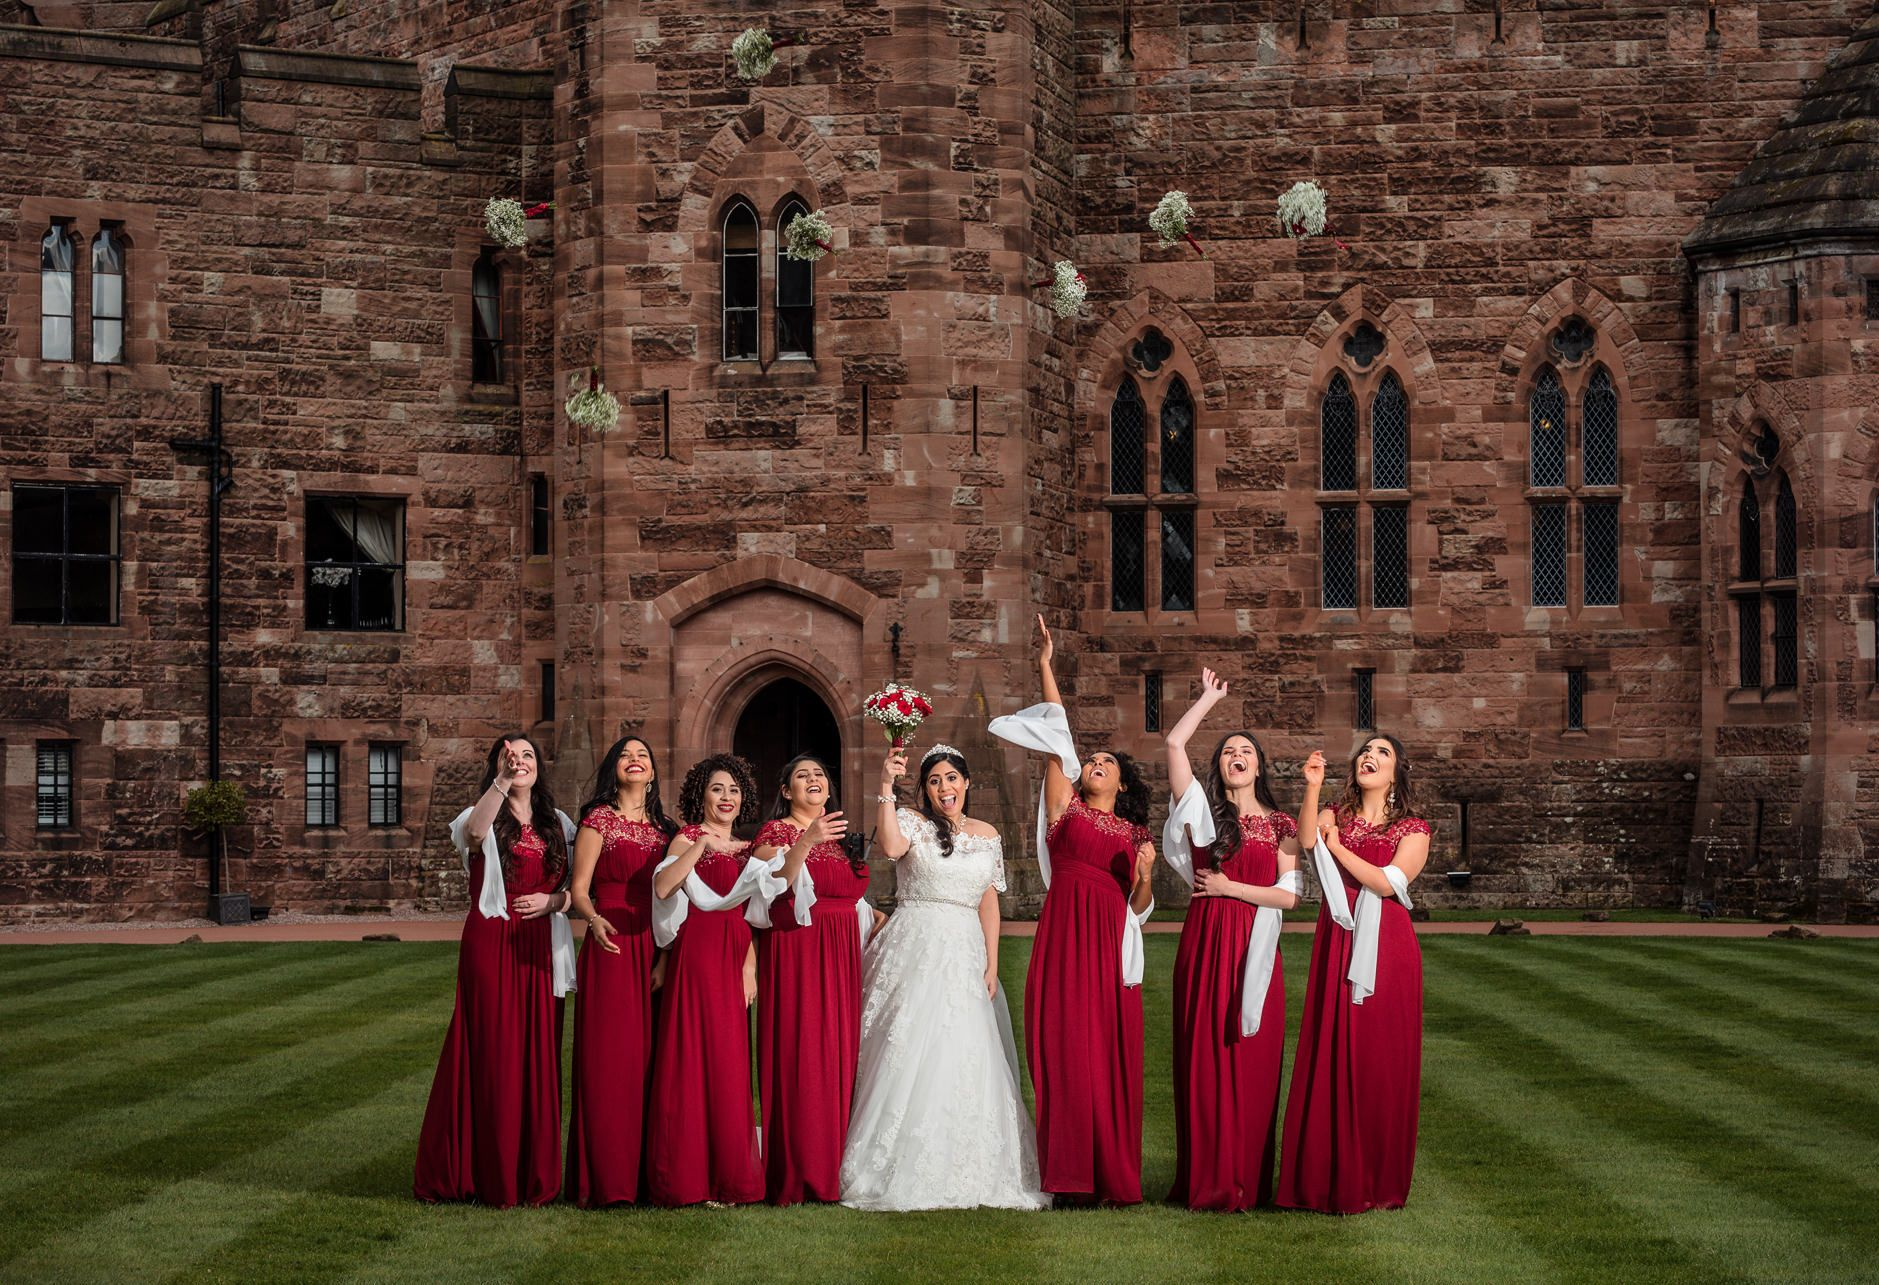 Bridesmaids wearing red dresses and bride in white throw their bouquets on the grass lawn of Peckforton Castle